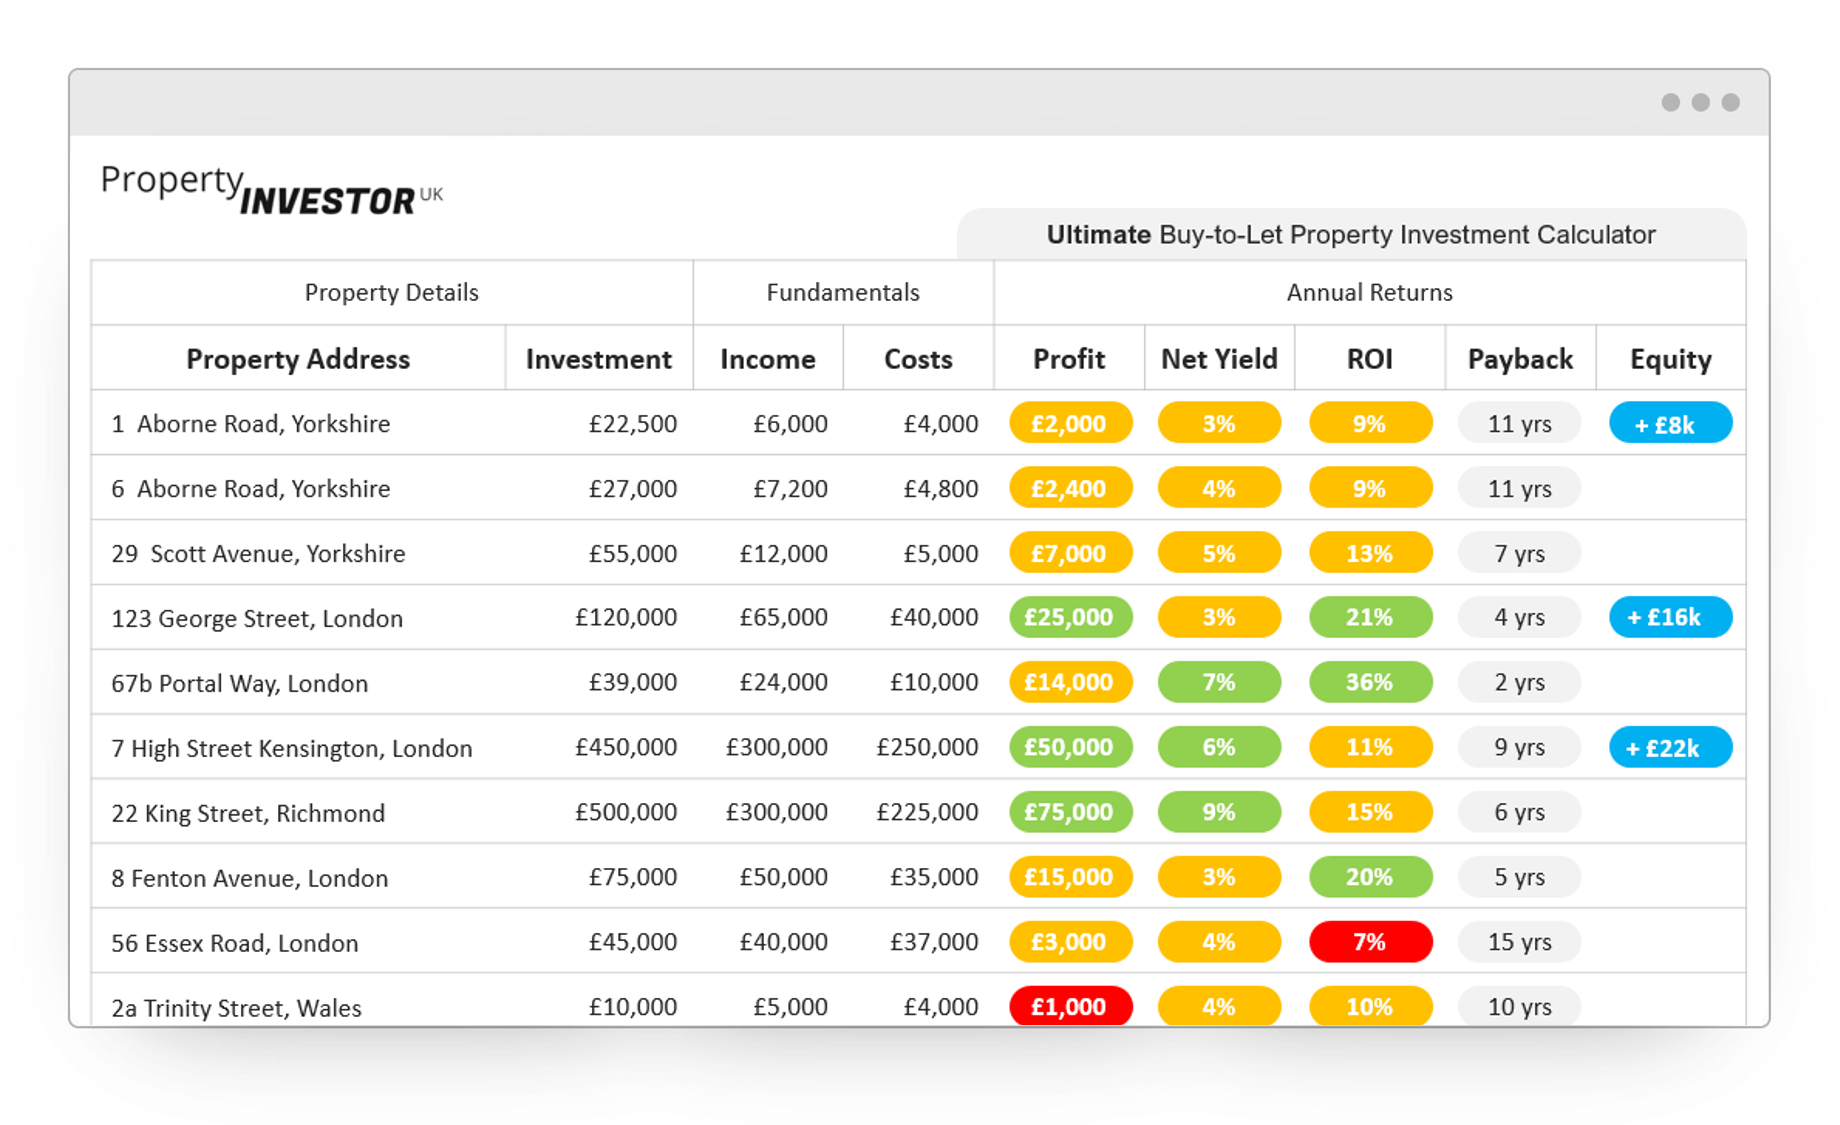 Meet the Property Investor UK Ultimate Buy-to-Let Property Investment Calculator, the best way to find, analyse, invest in and track your property investments.